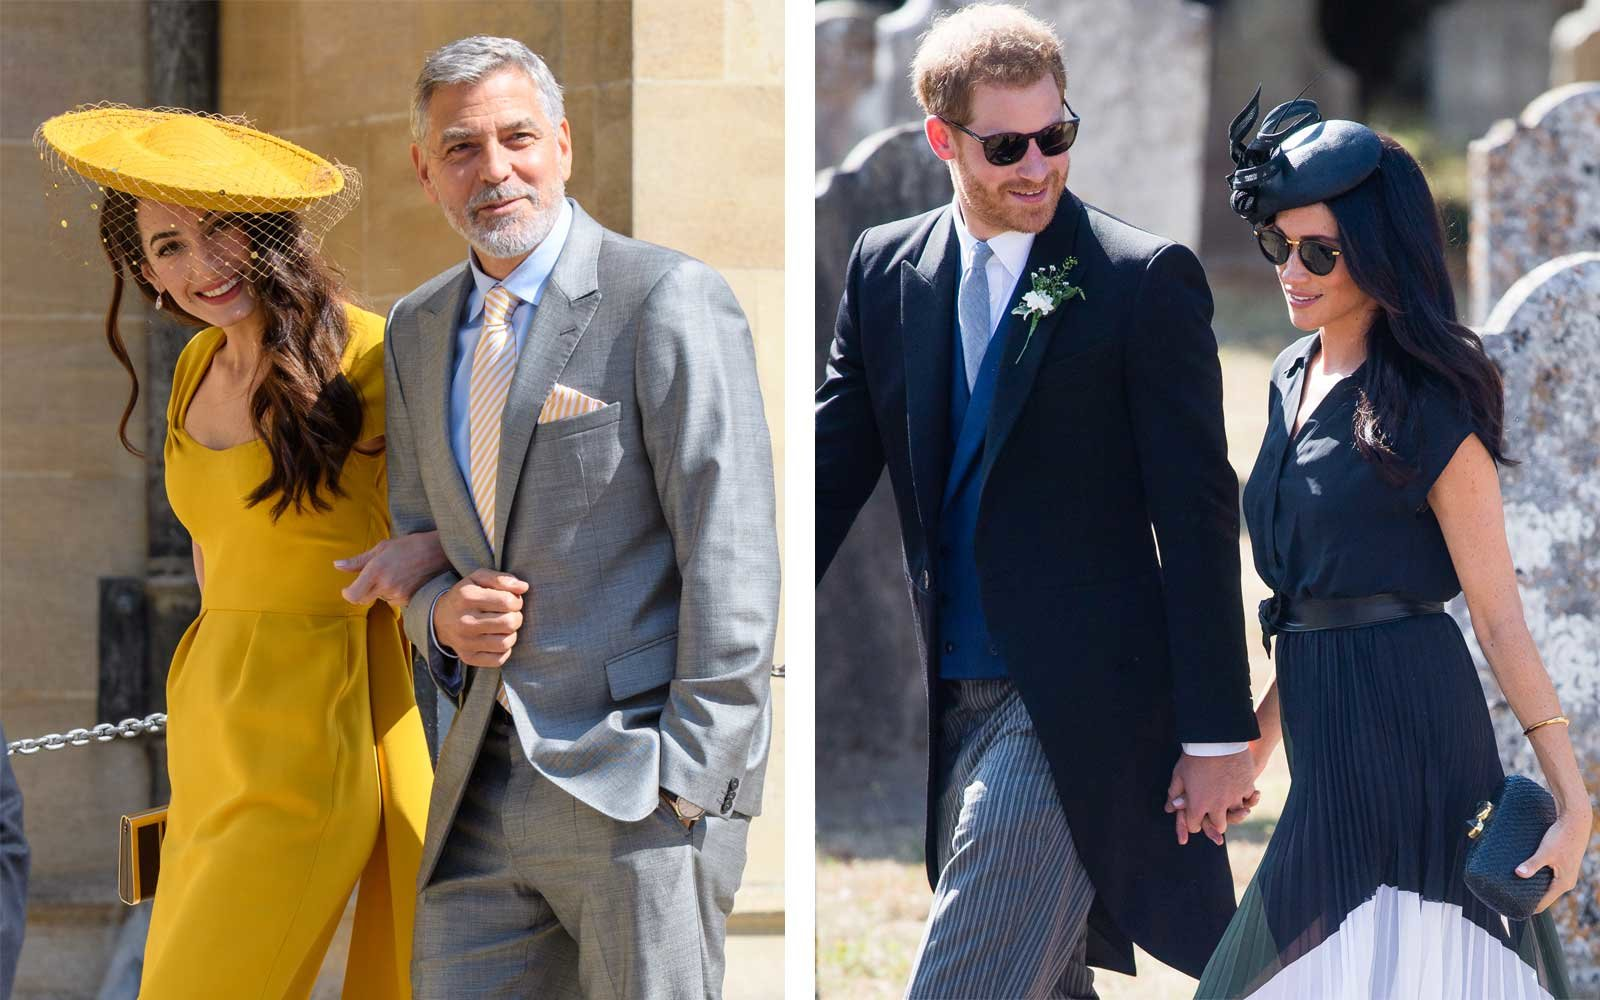 Prince Harry and Meghan Markle Took a Secret Vacation With